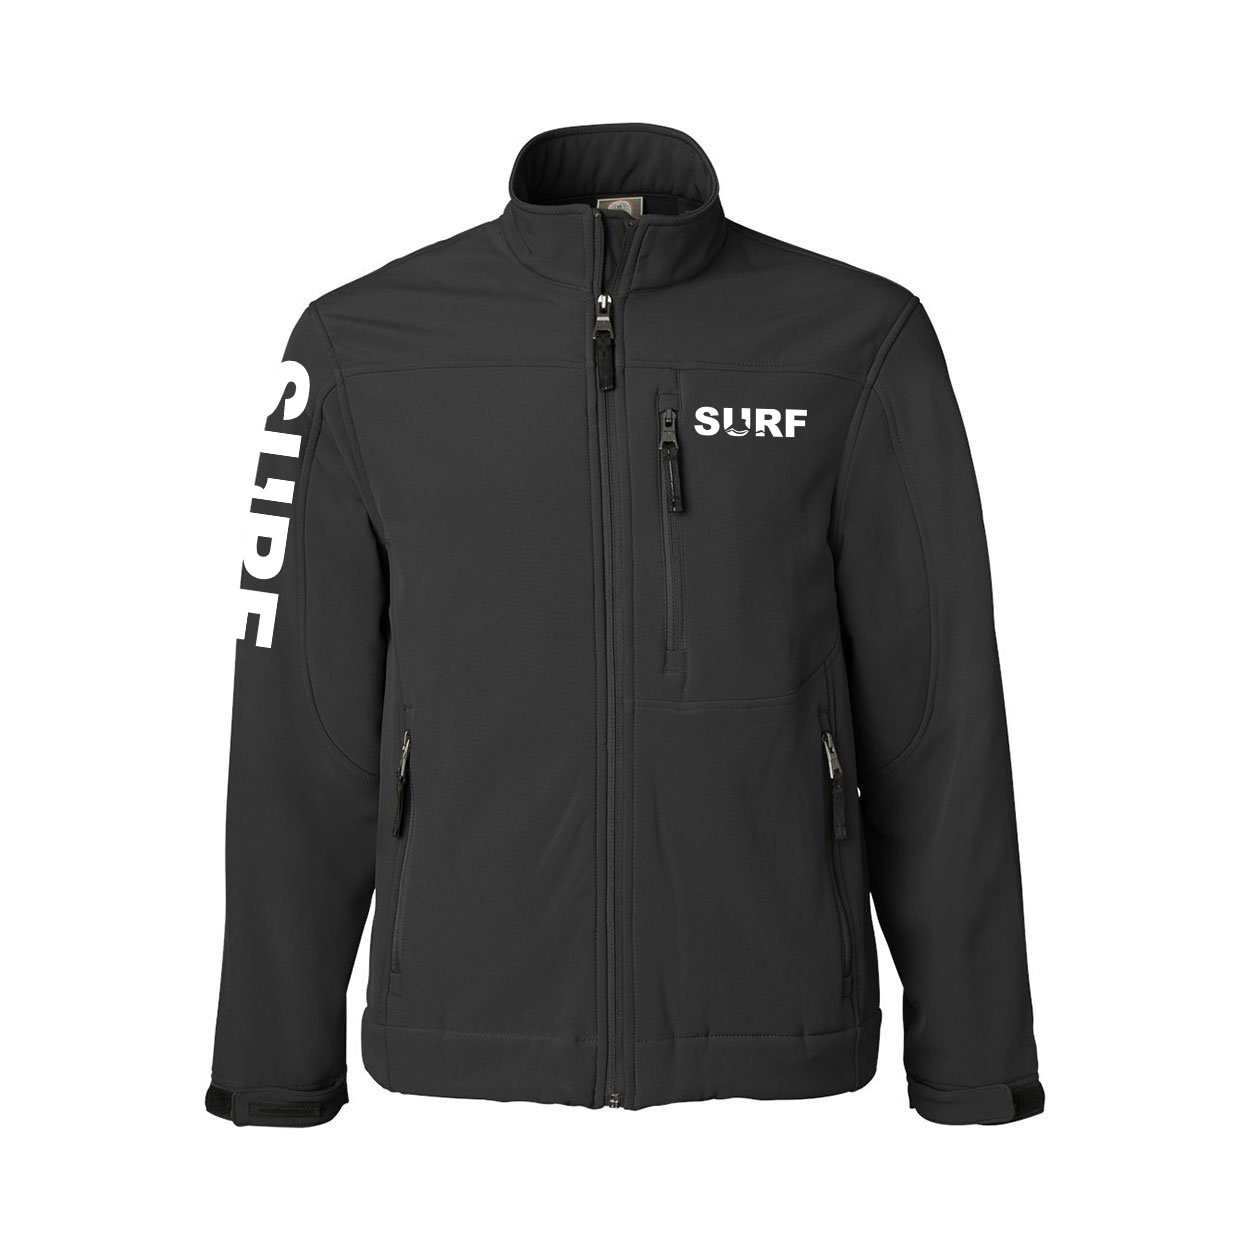 Surf Wave Logo Classic Soft Shell Weatherproof Jacket (White Logo)